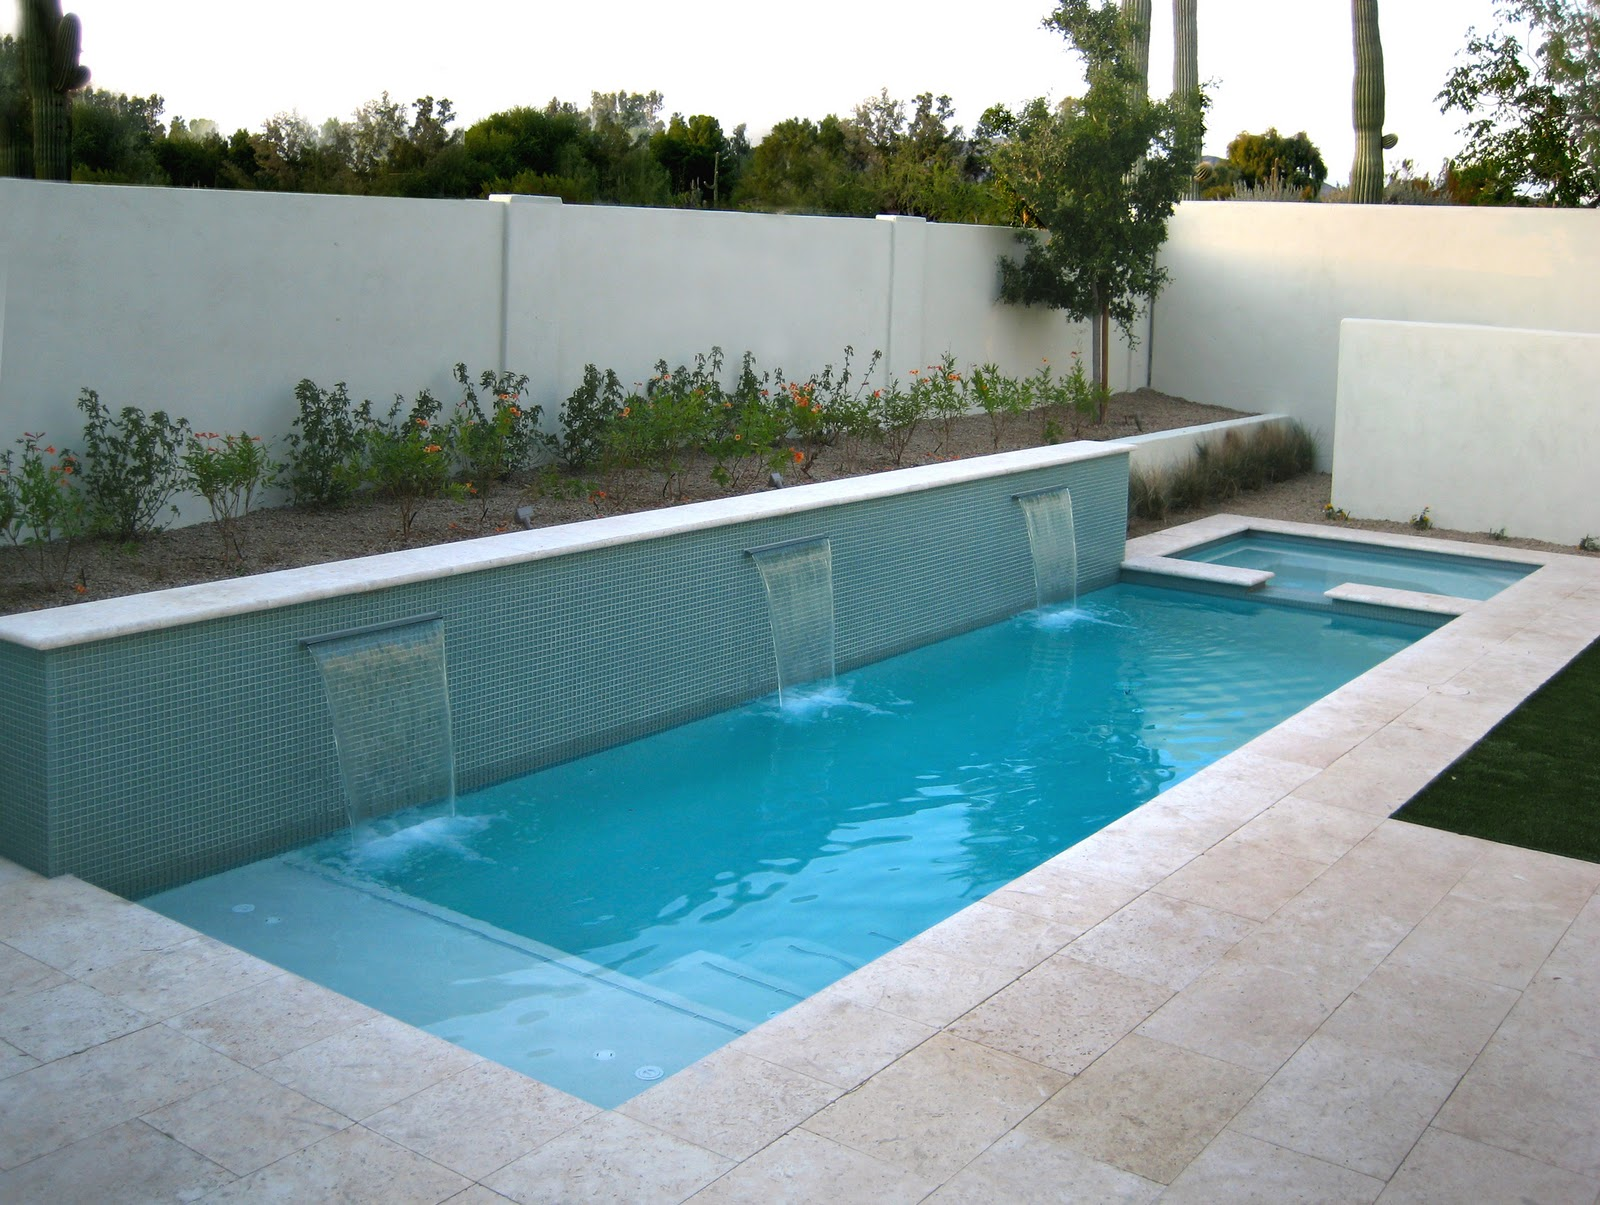 25 fabulous small backyard designs with swimming pool for Swimming pools for small yards